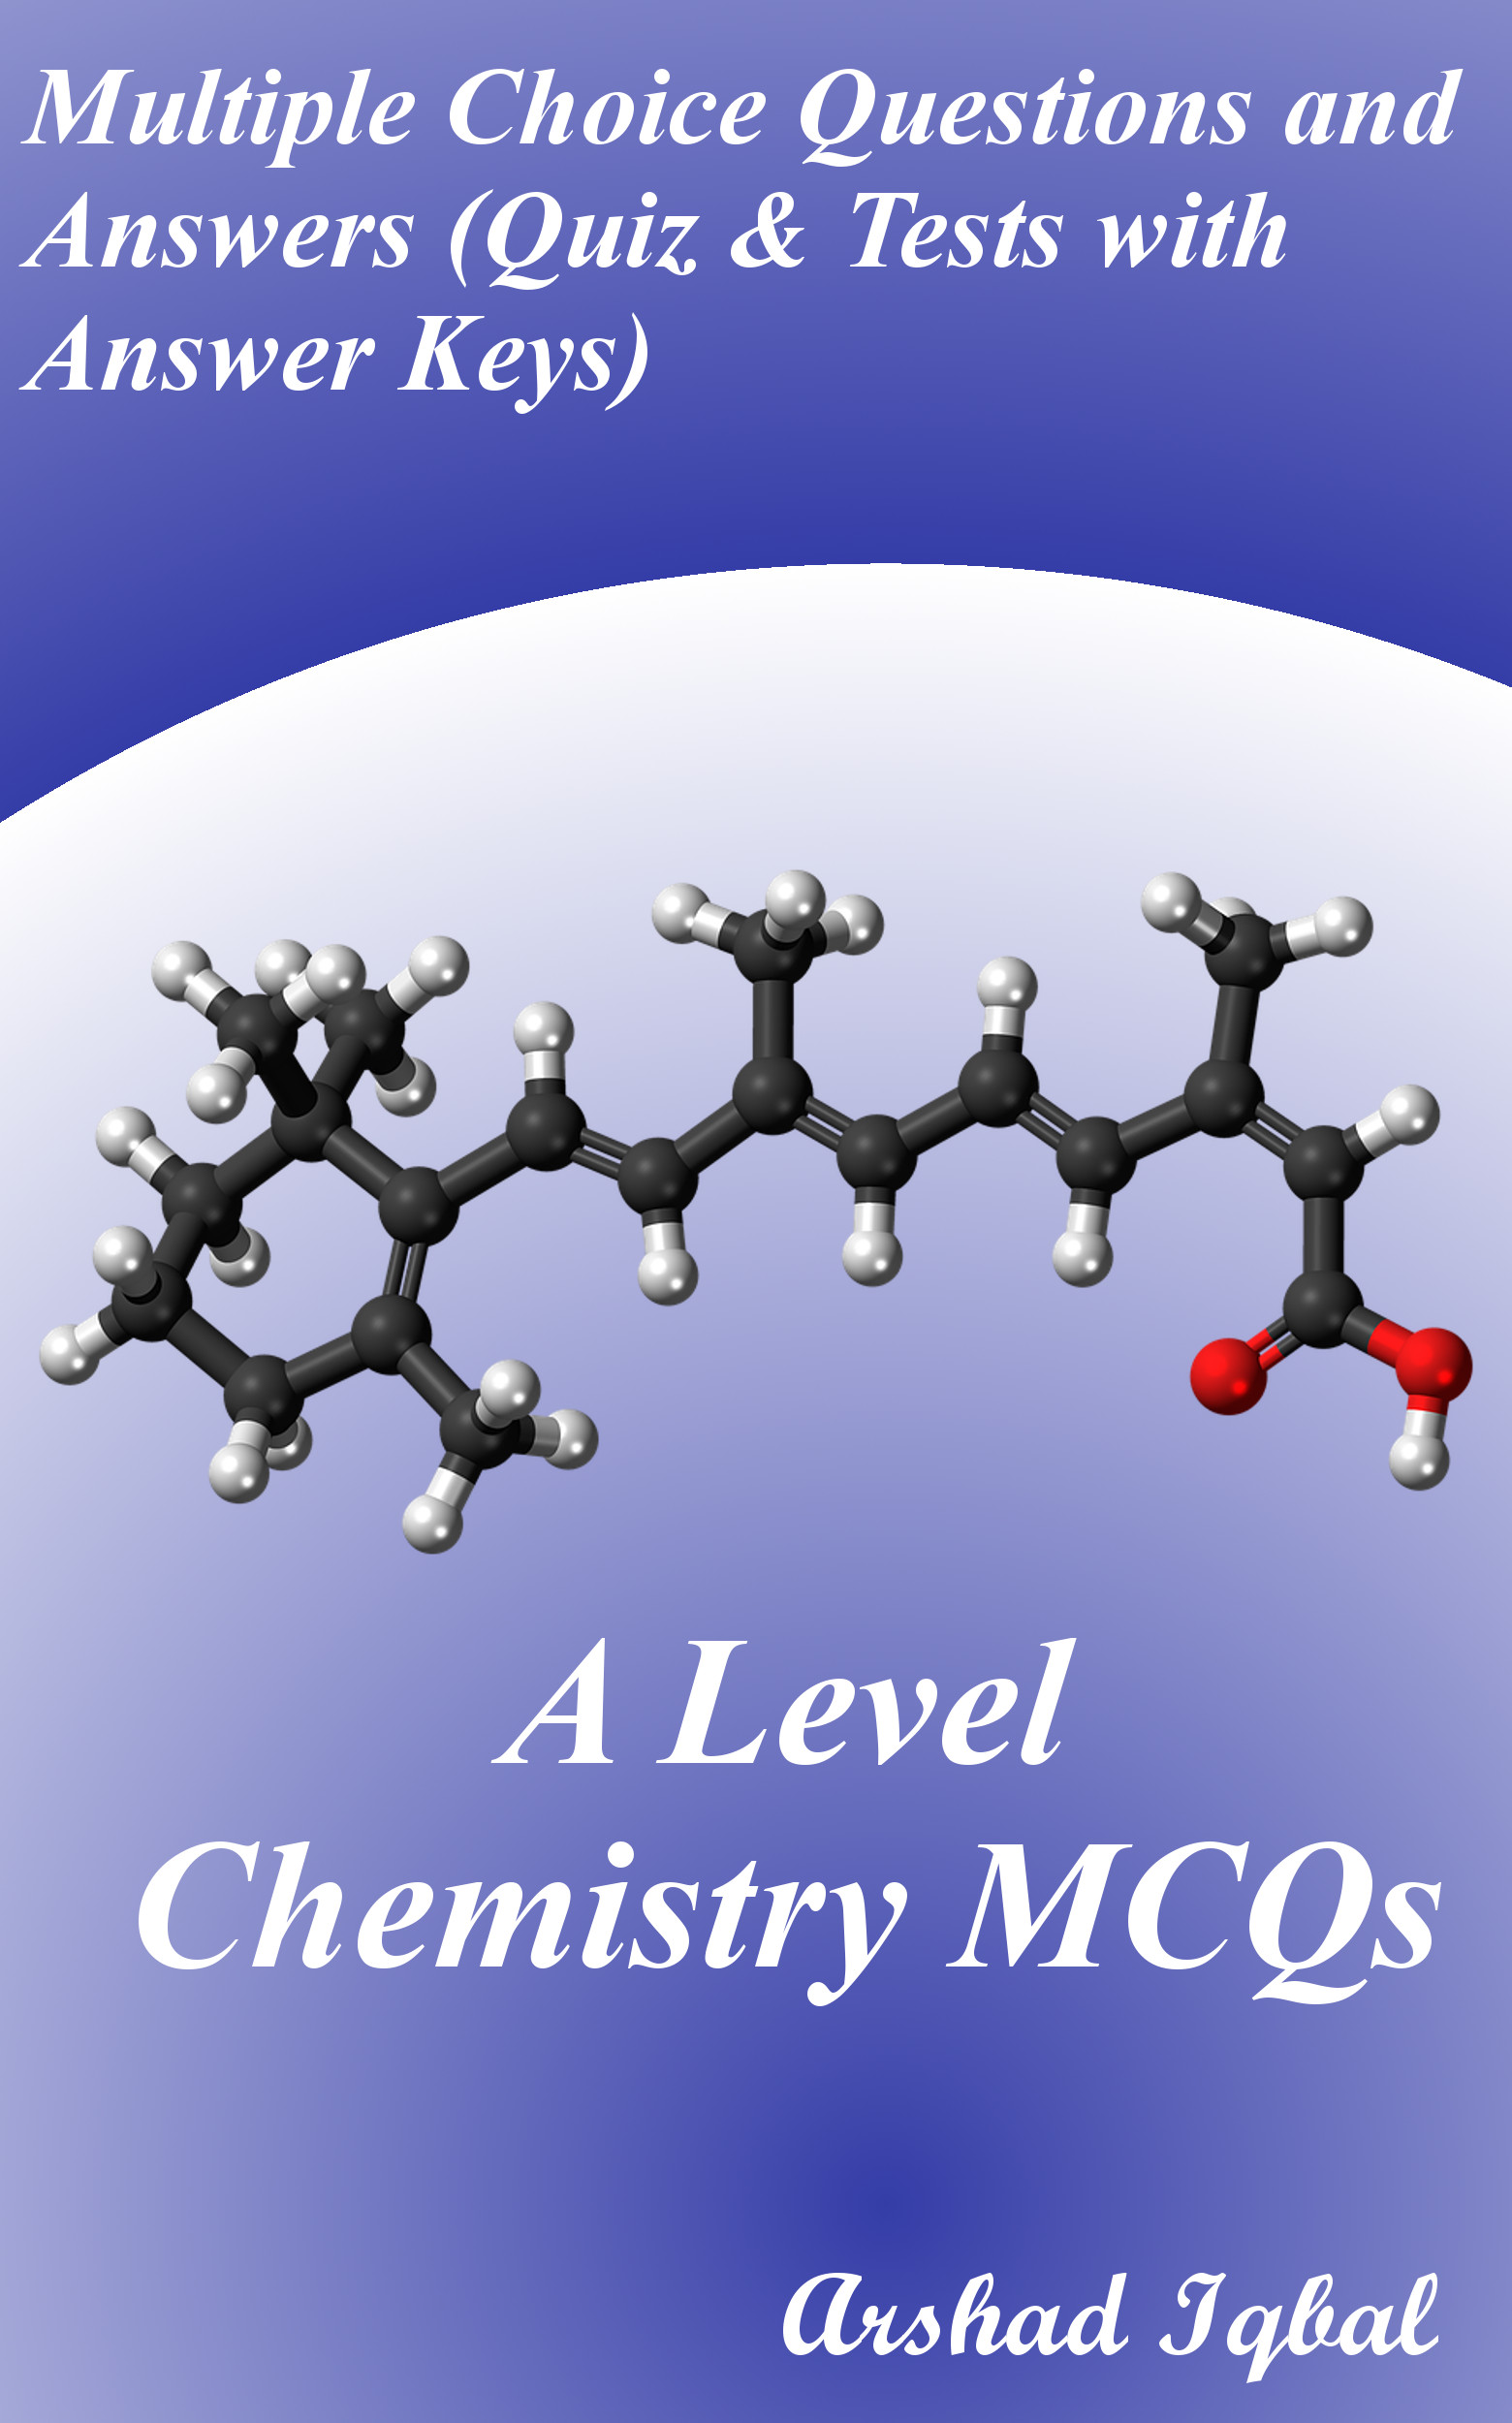 A Level Chemistry MCQs: Multiple Choice Questions and Answers (Quiz & Tests  with Answer Keys), an Ebook by Arshad Iqbal